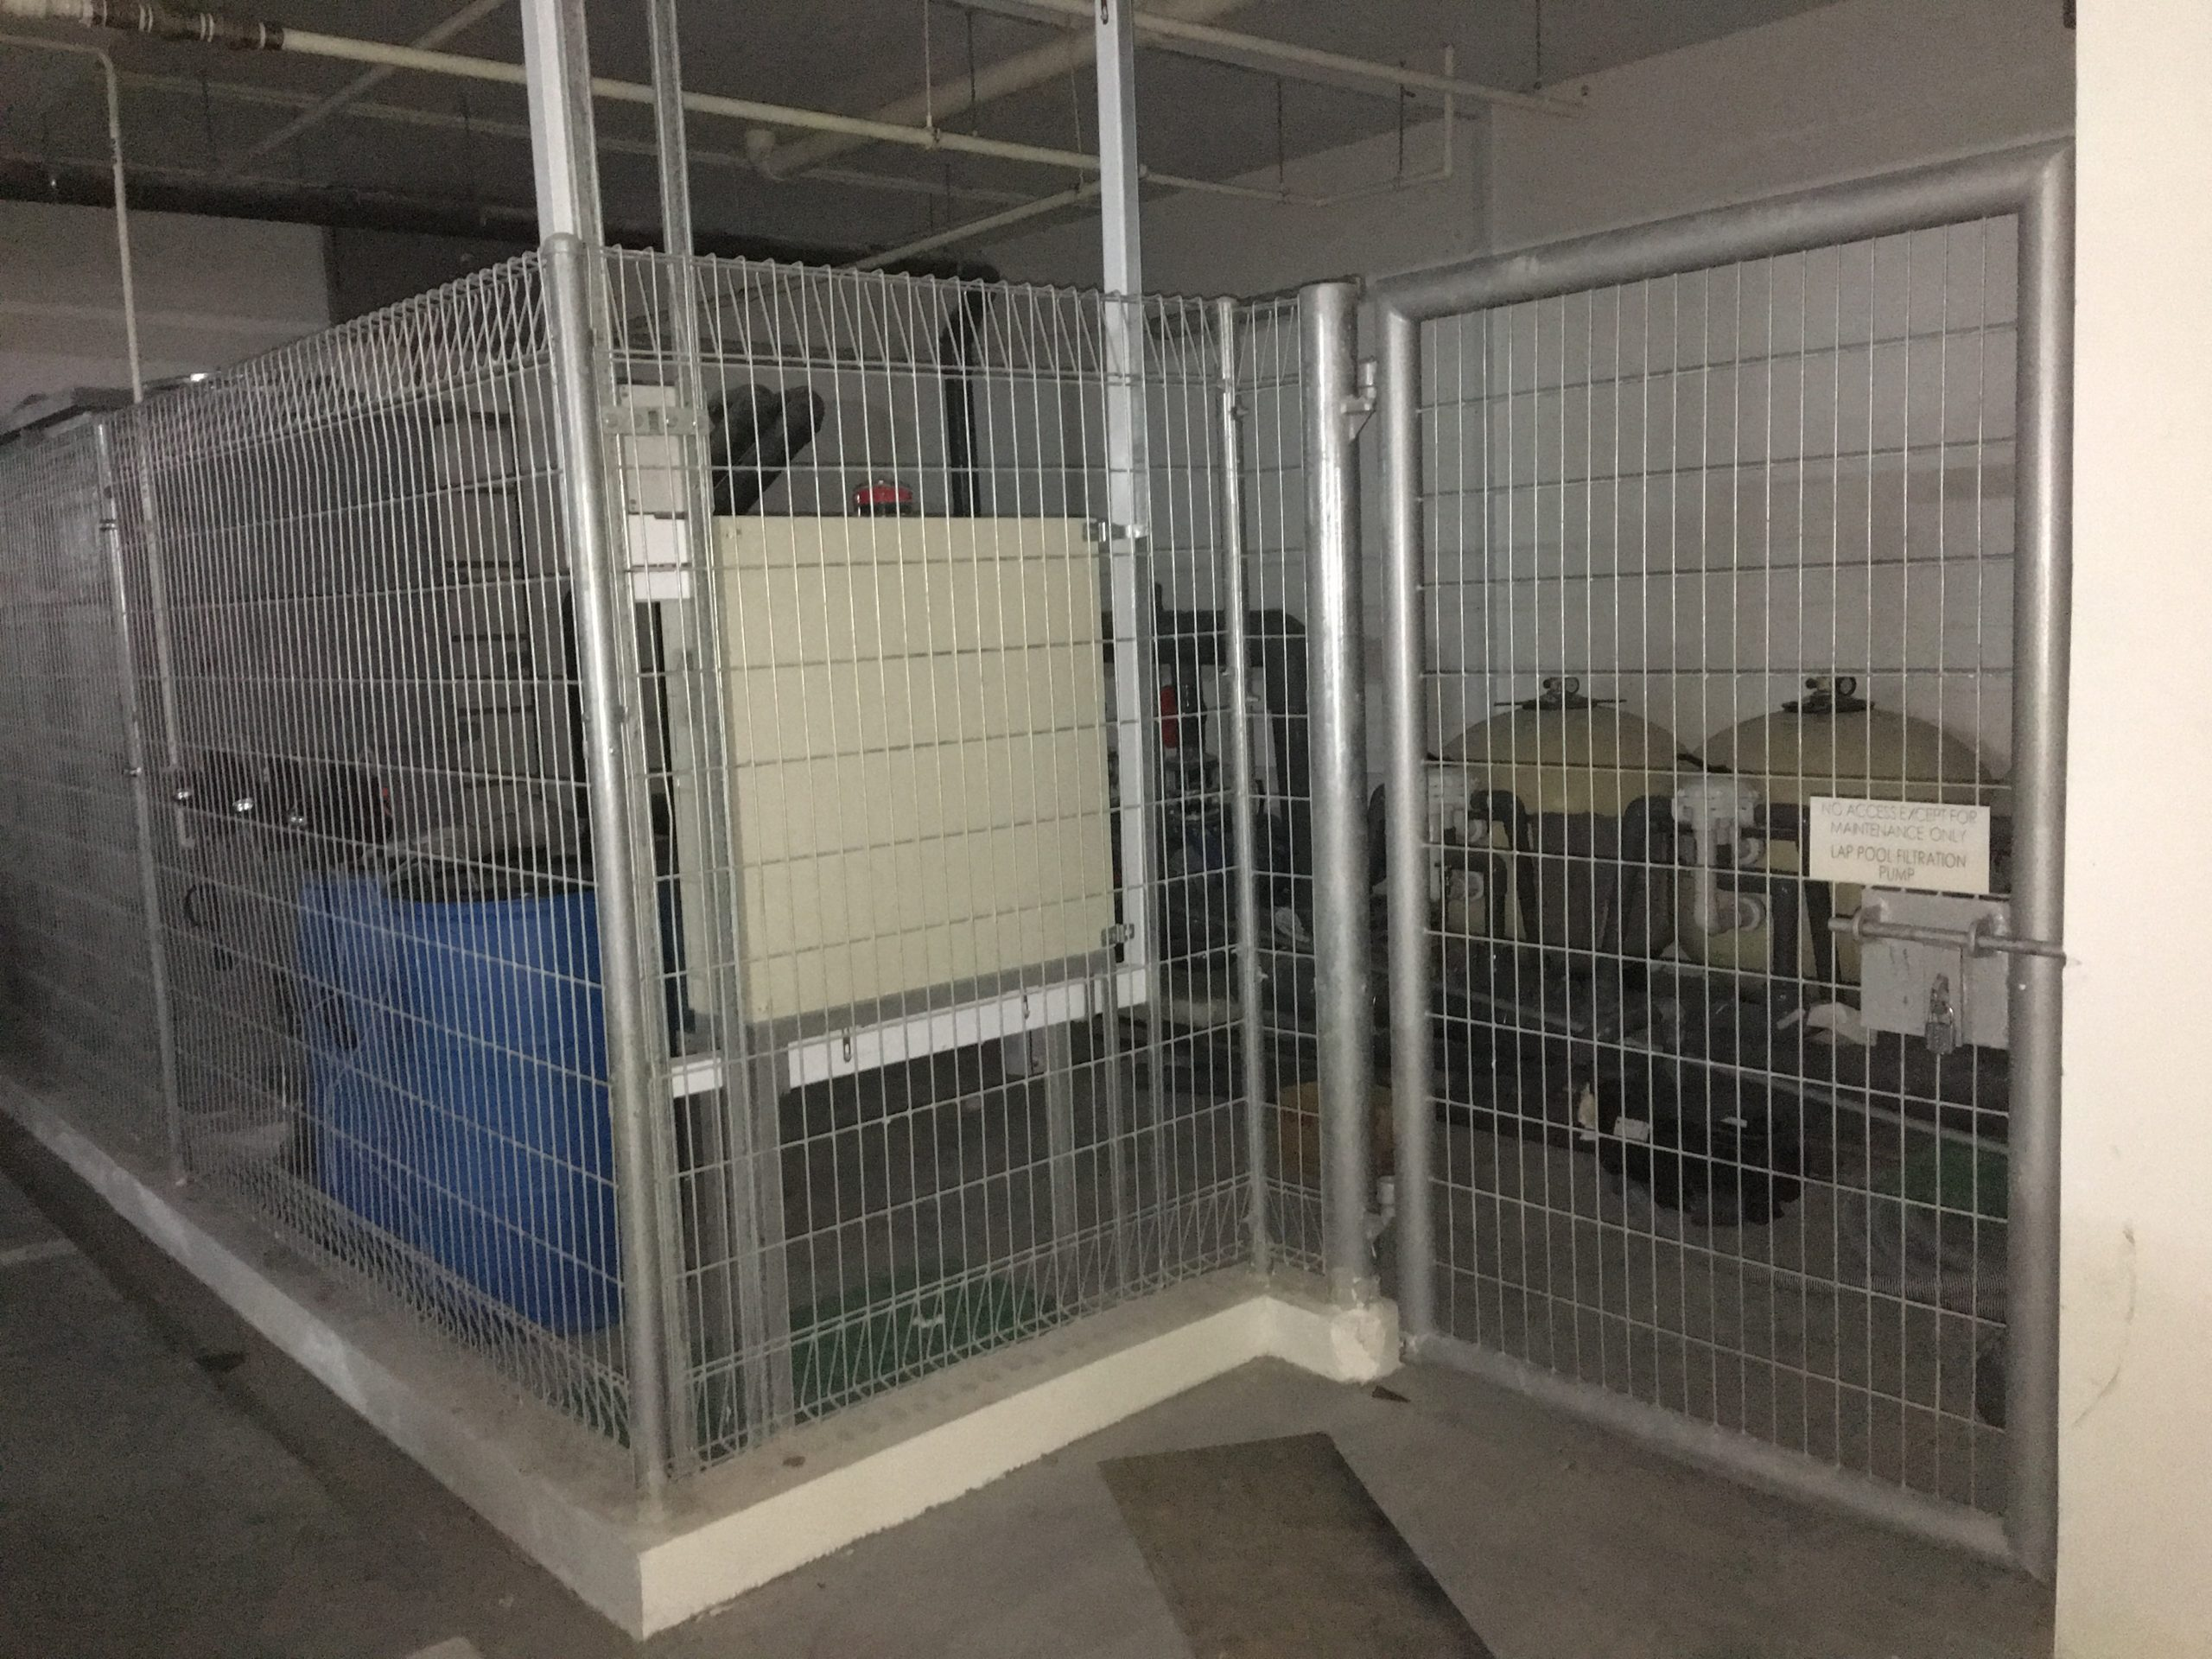 Room secured with fencing